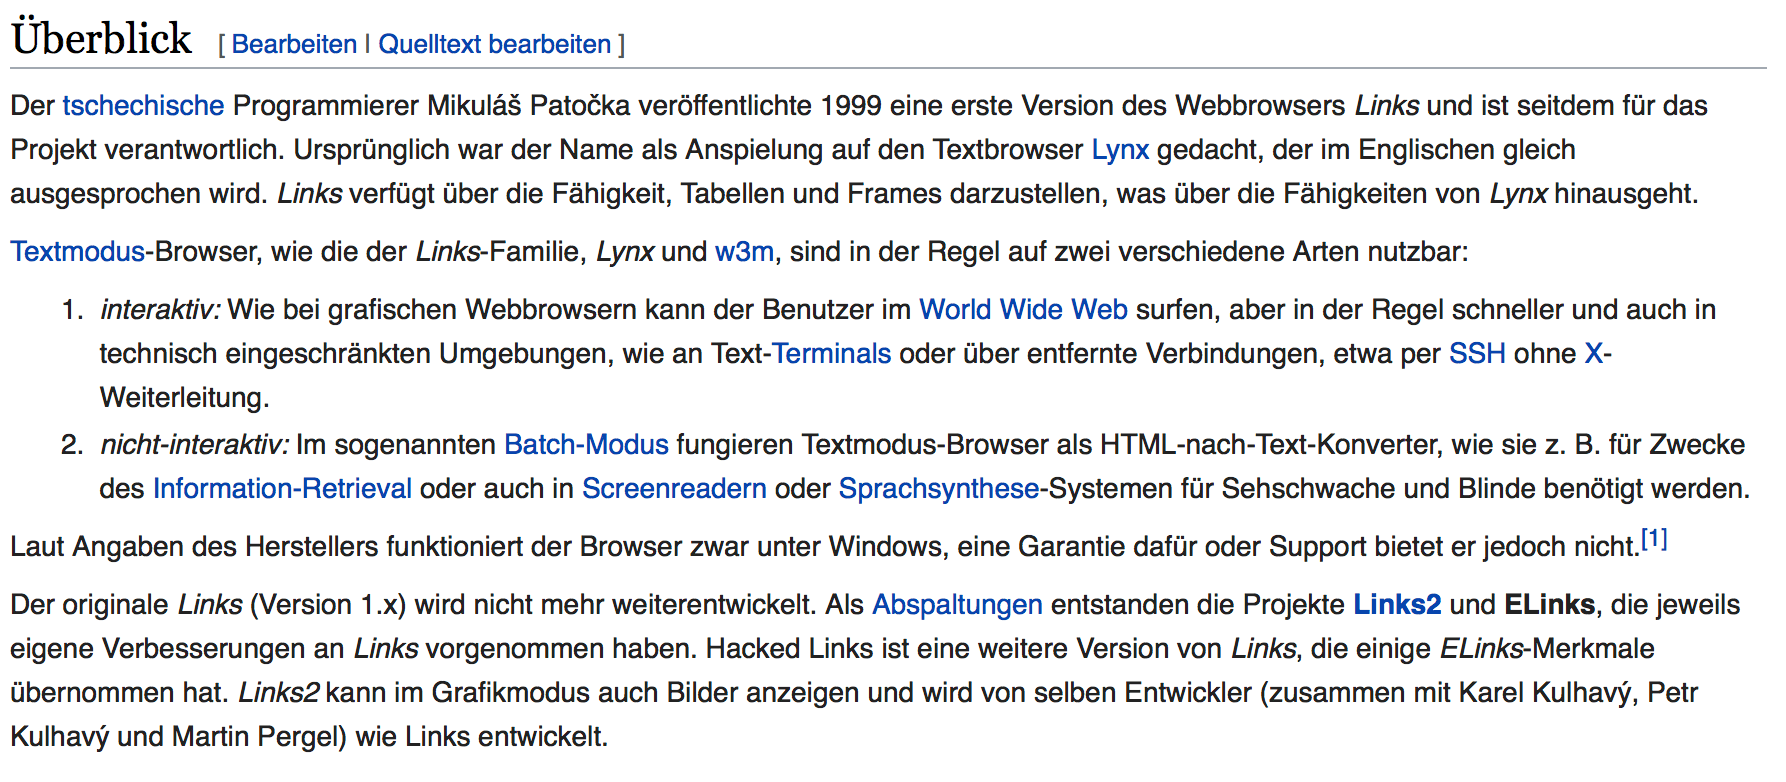 interne verlinkungen Wikipedia